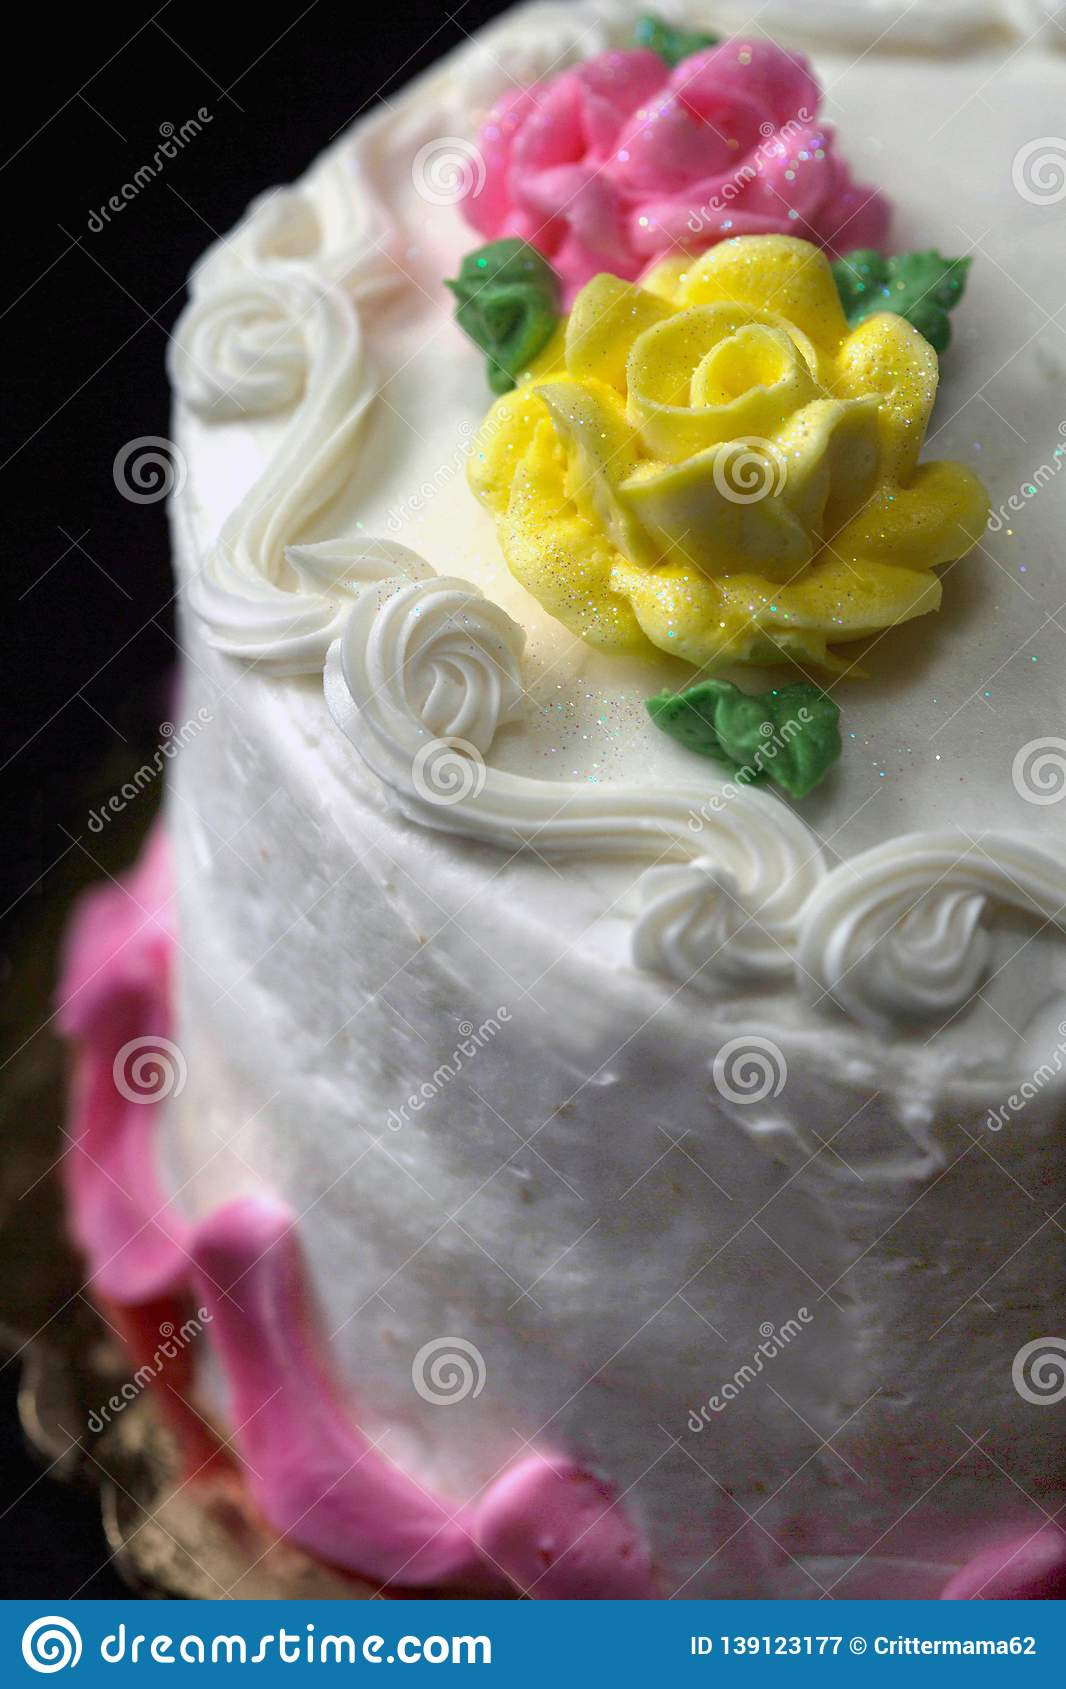 Wondrous Birthday Cake That Is Round With 2 Layers And White Frosting Stock Funny Birthday Cards Online Ioscodamsfinfo